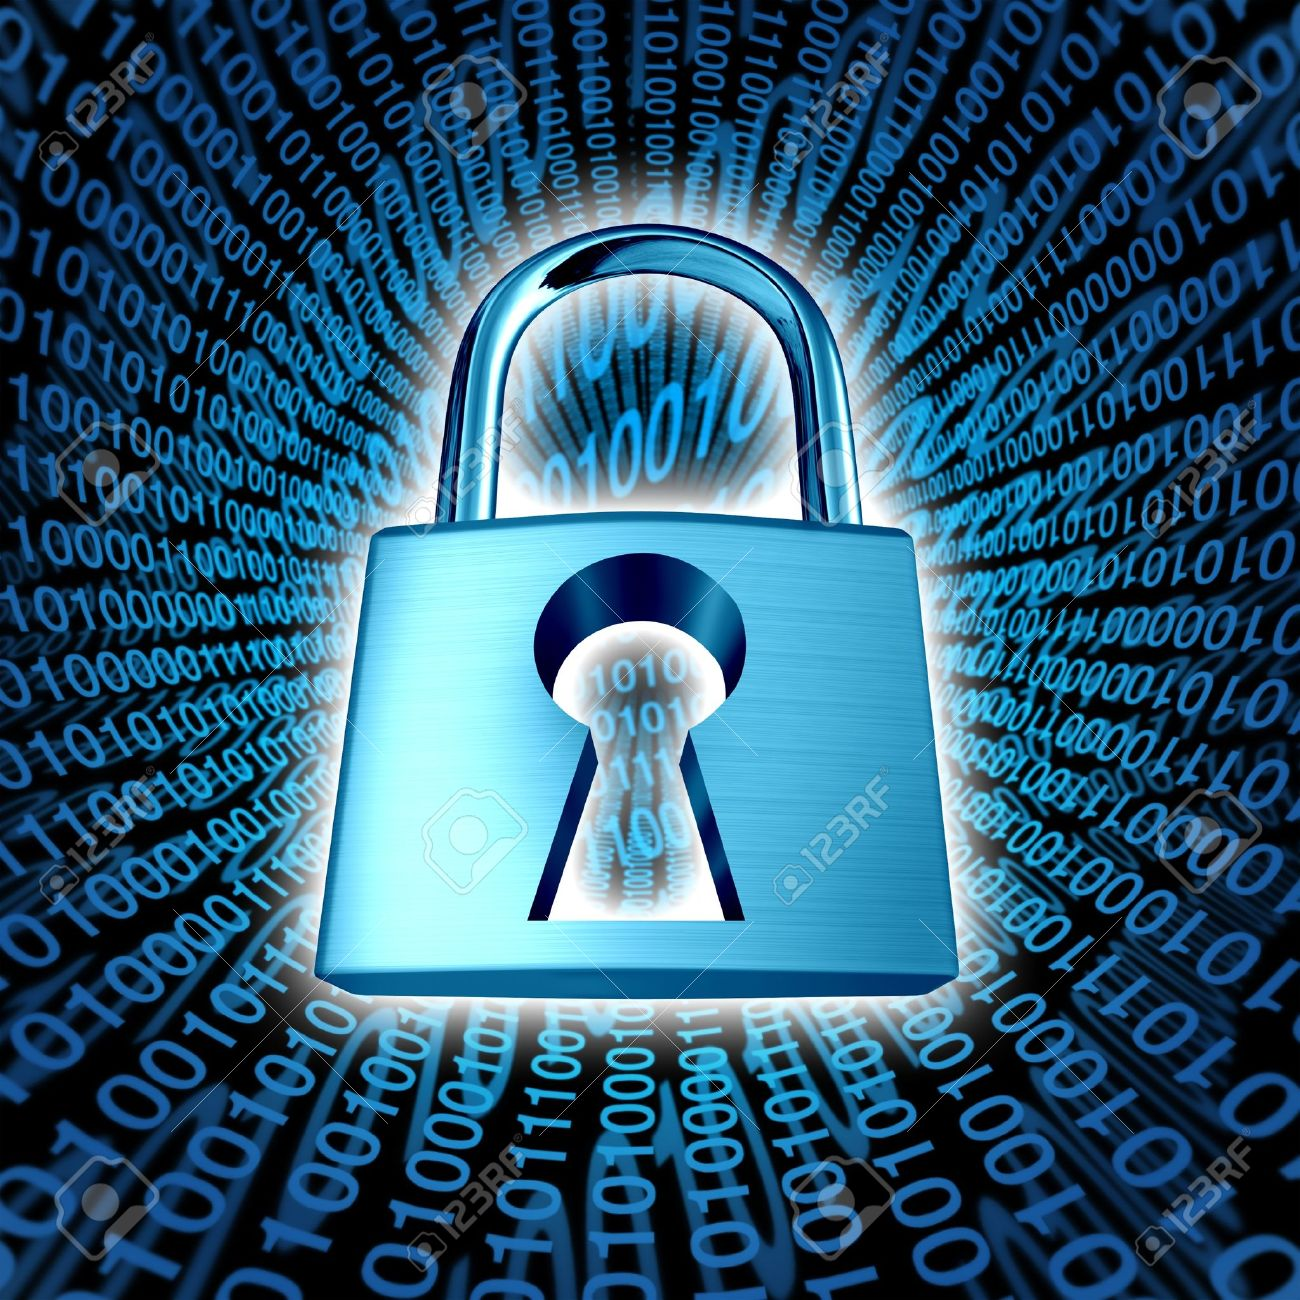 Data security and computer server network safety with a protection symbol of a lock with a keyhole on a binary code background as an icon of encryption and internet privacy technology in cyberspace Stock Photo - 13983375